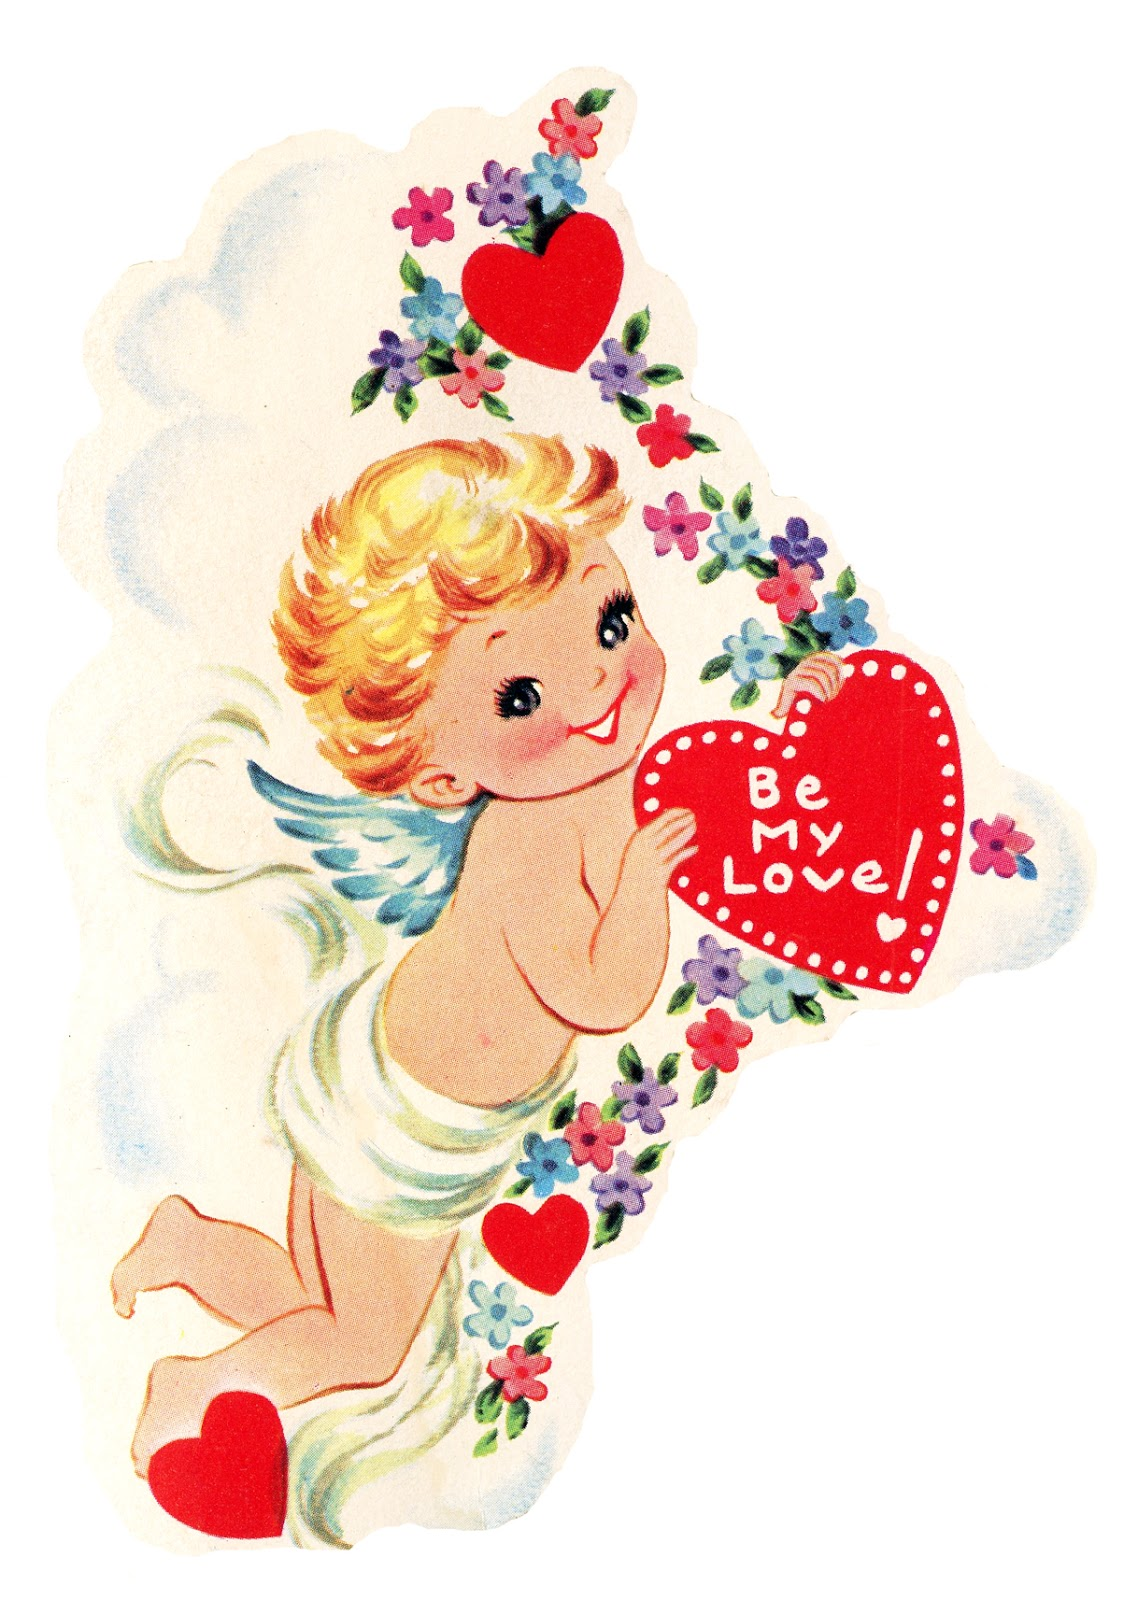 Cupid pictures